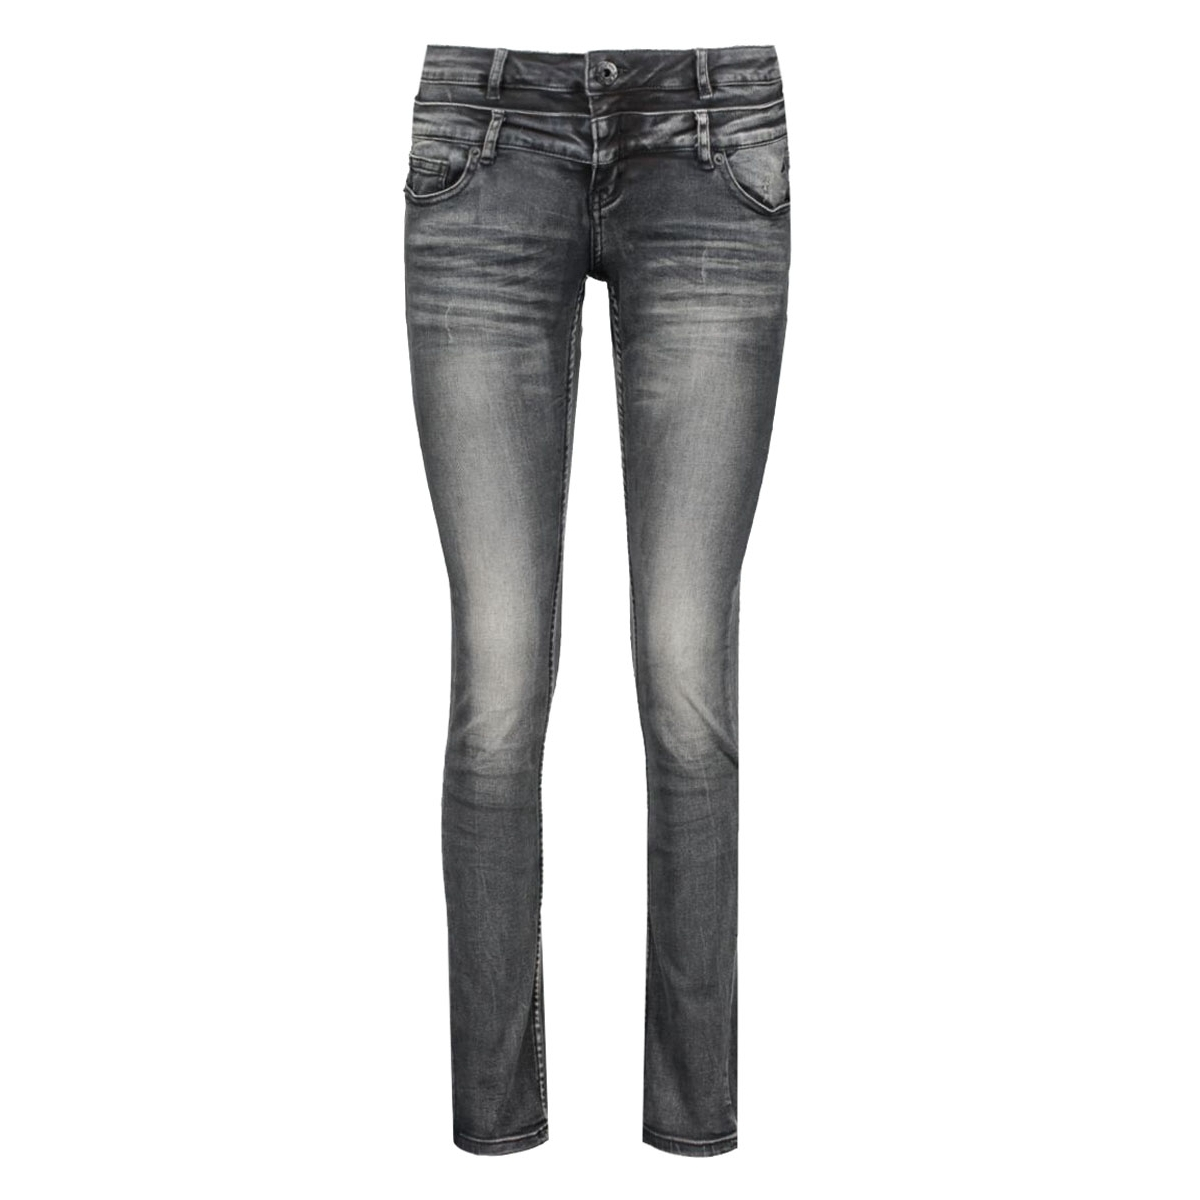 w16.1.4863 d`nimes urban grey circle of trust jeans urban grey